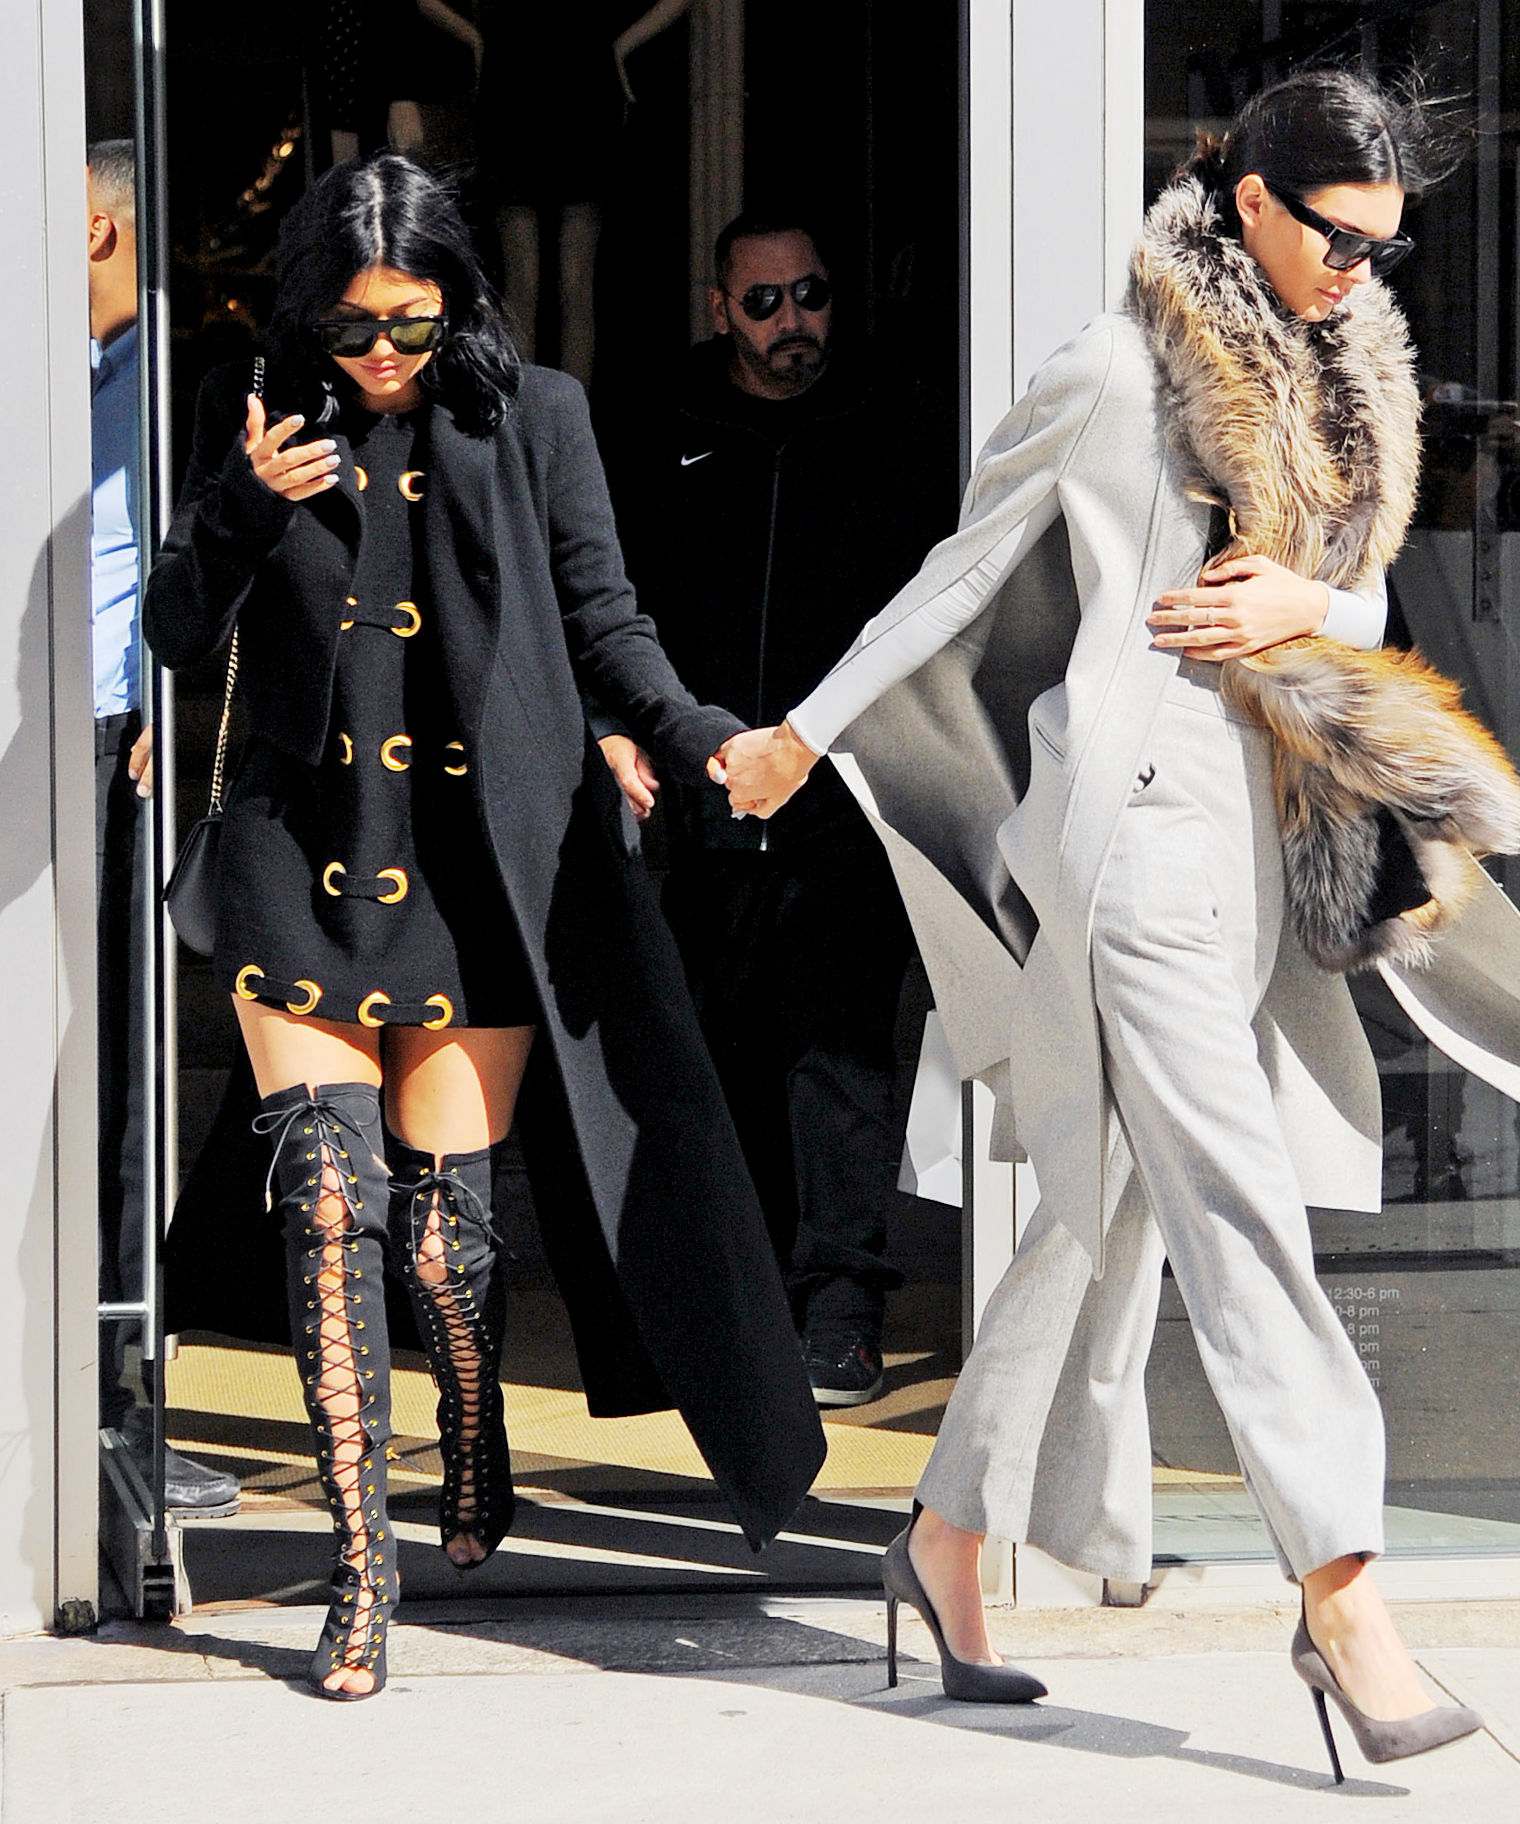 Kendall and Kylie Jenner Present Two Fun Ways to Dress Up a Winter Coat